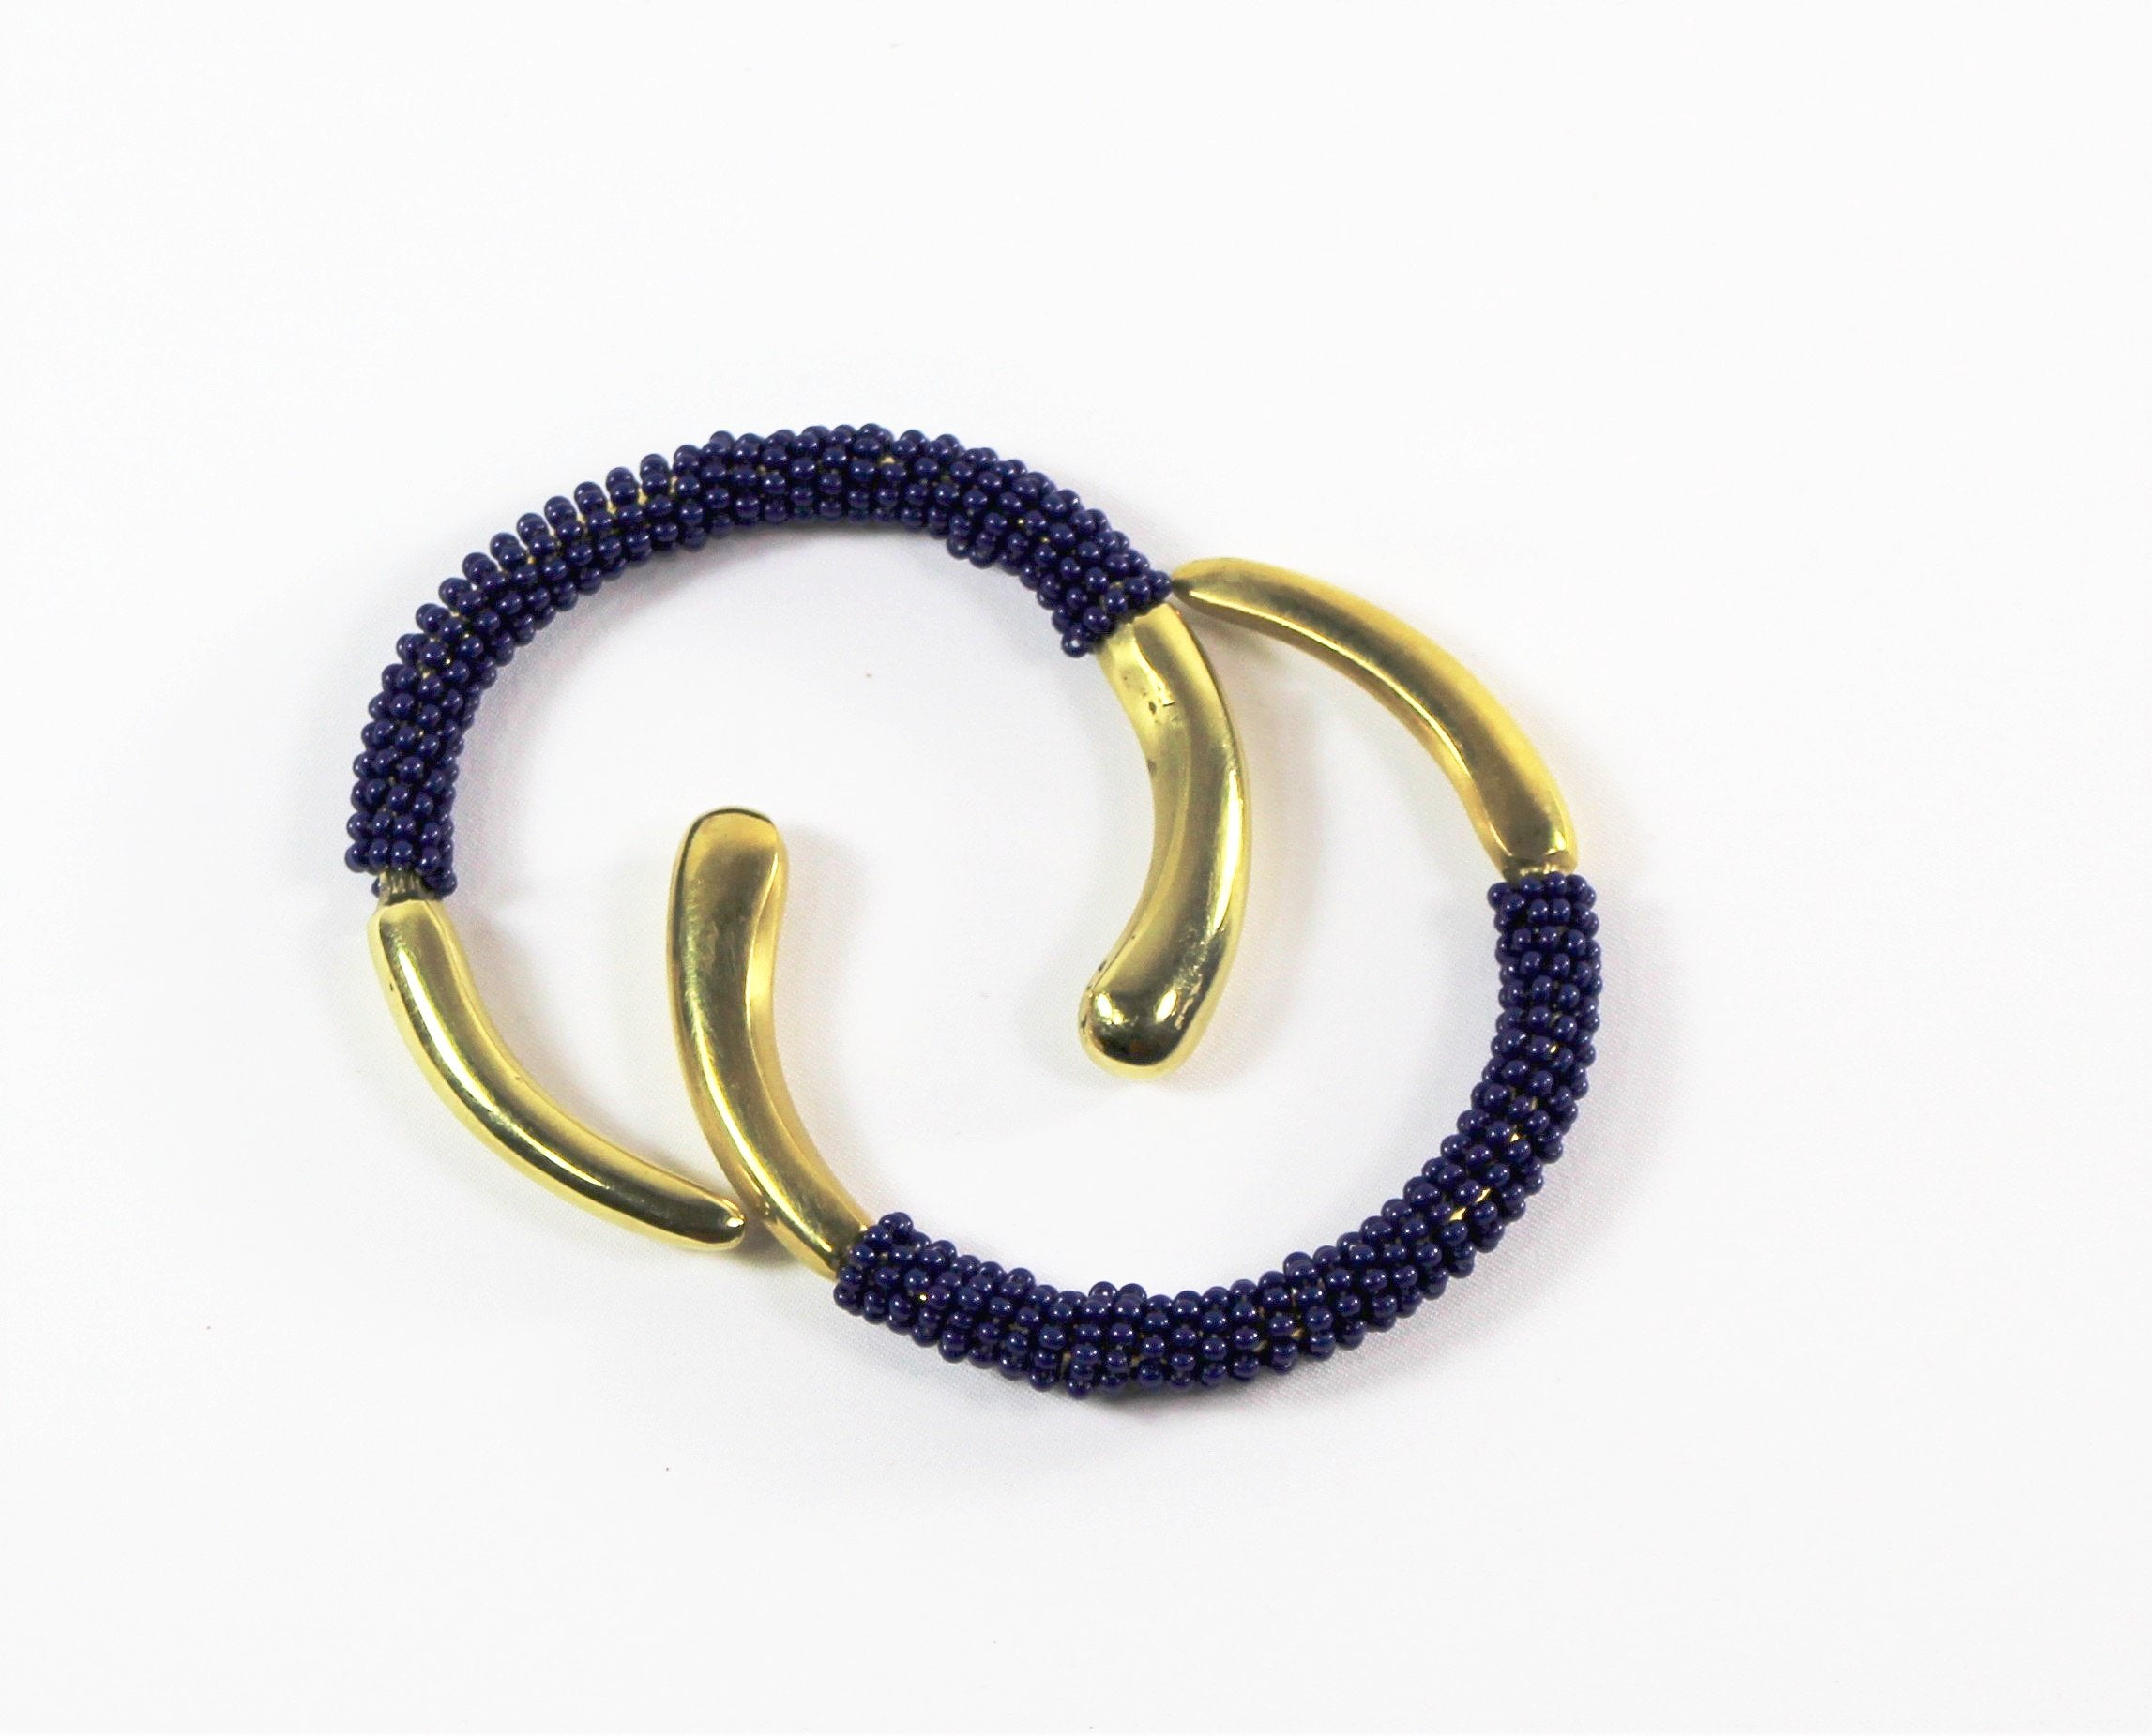 Brass and Beaded Bangle Duo - Bridges to Borders